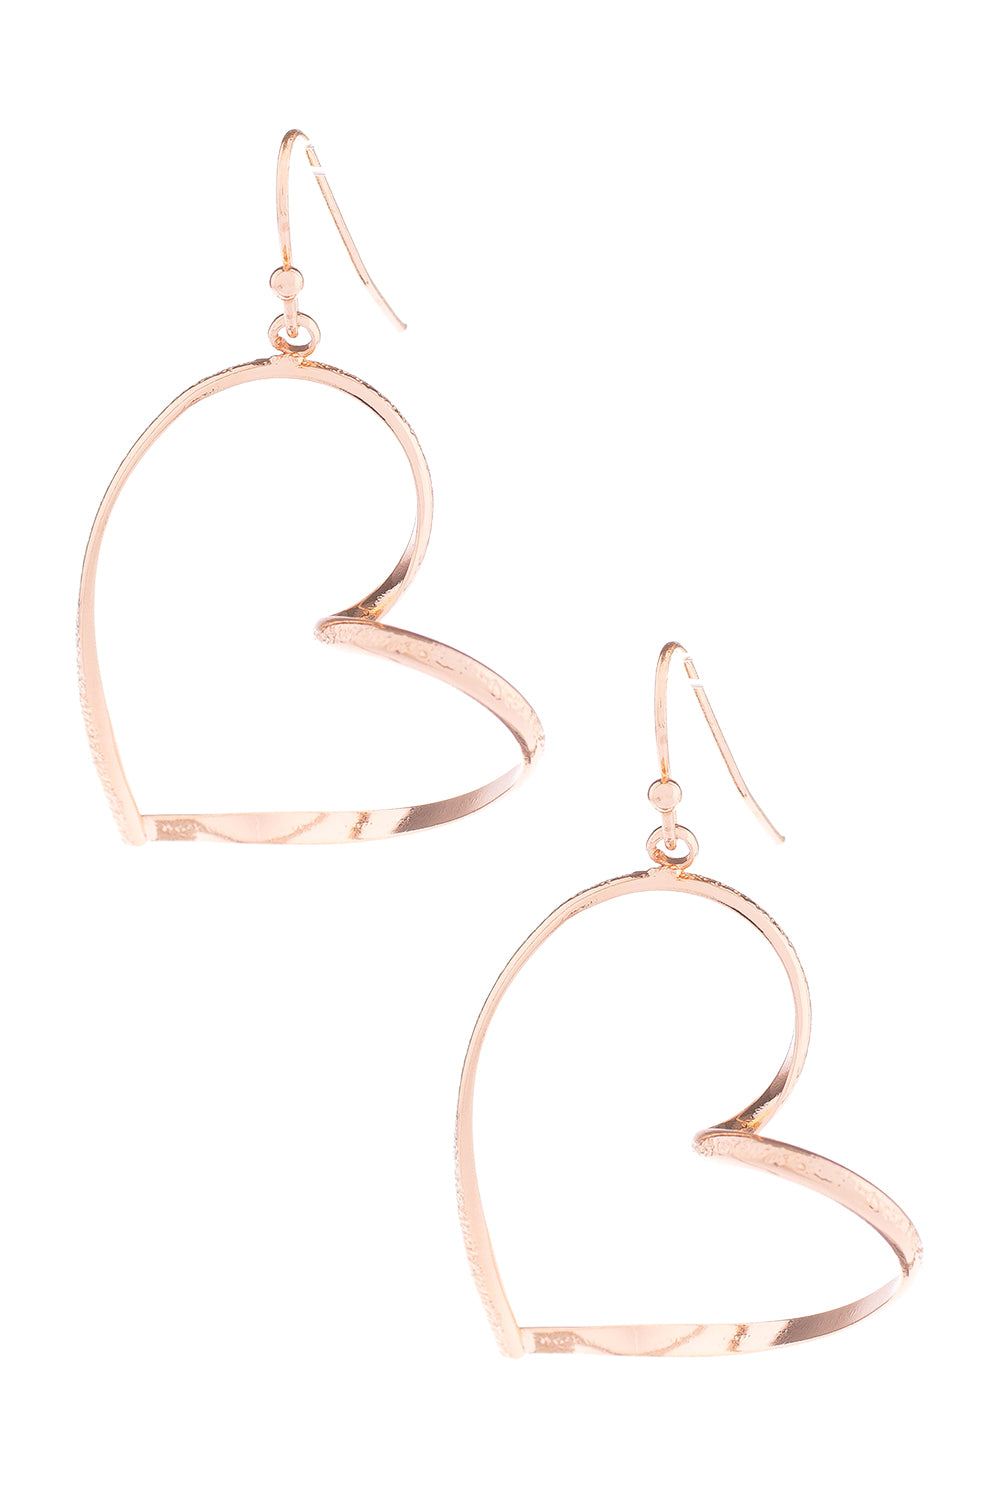 Type 1 Spiraled Adoration Earrings